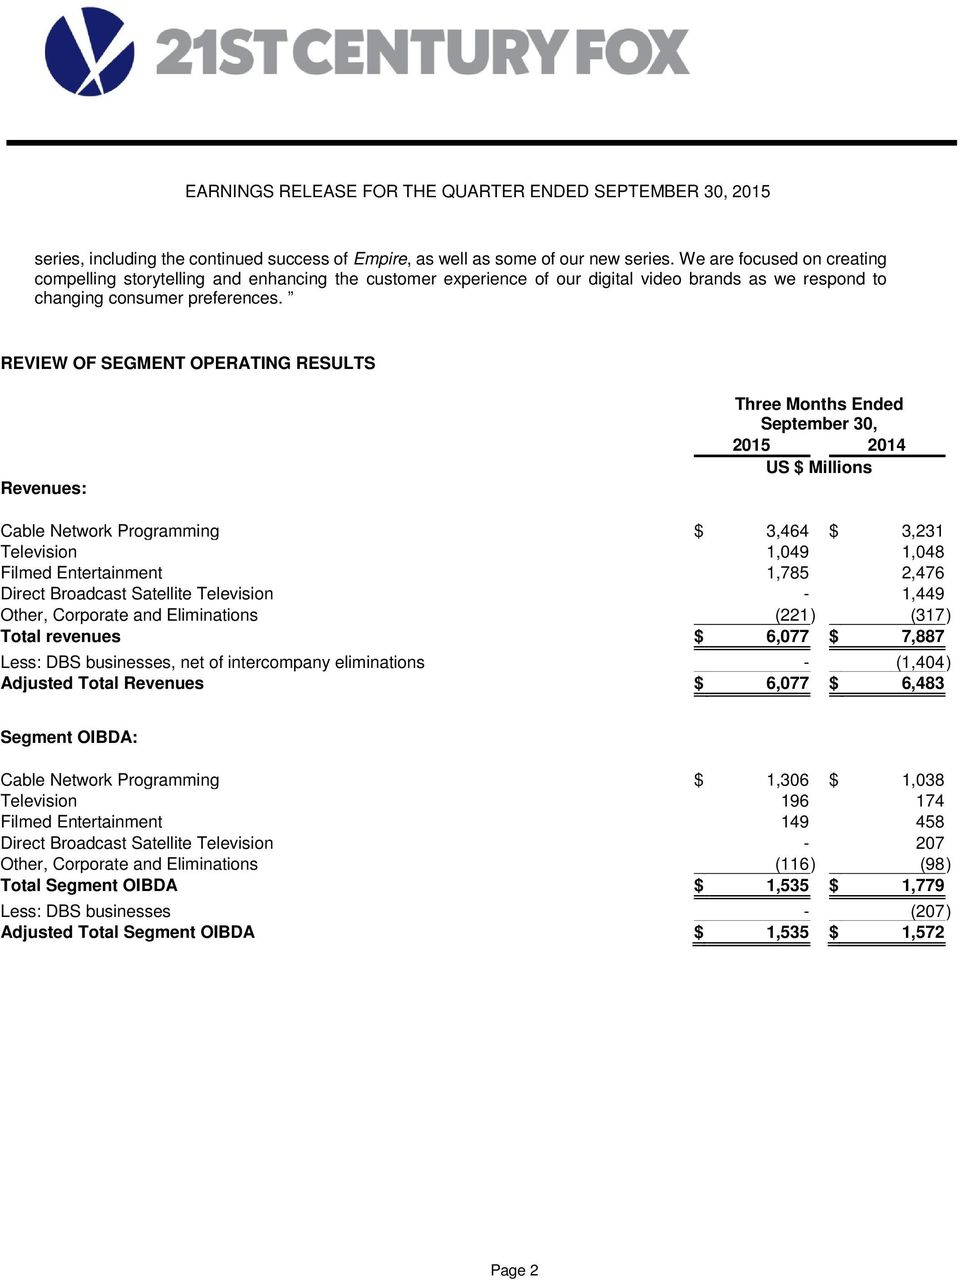 REVIEW OF SEGMENT OPERATING RESULTS Revenues: Cable Network Programming $ 3,464 $ 3,231 Television 1,049 1,048 Filmed Entertainment 1,785 2,476 Direct Broadcast Satellite Television - 1,449 Other,